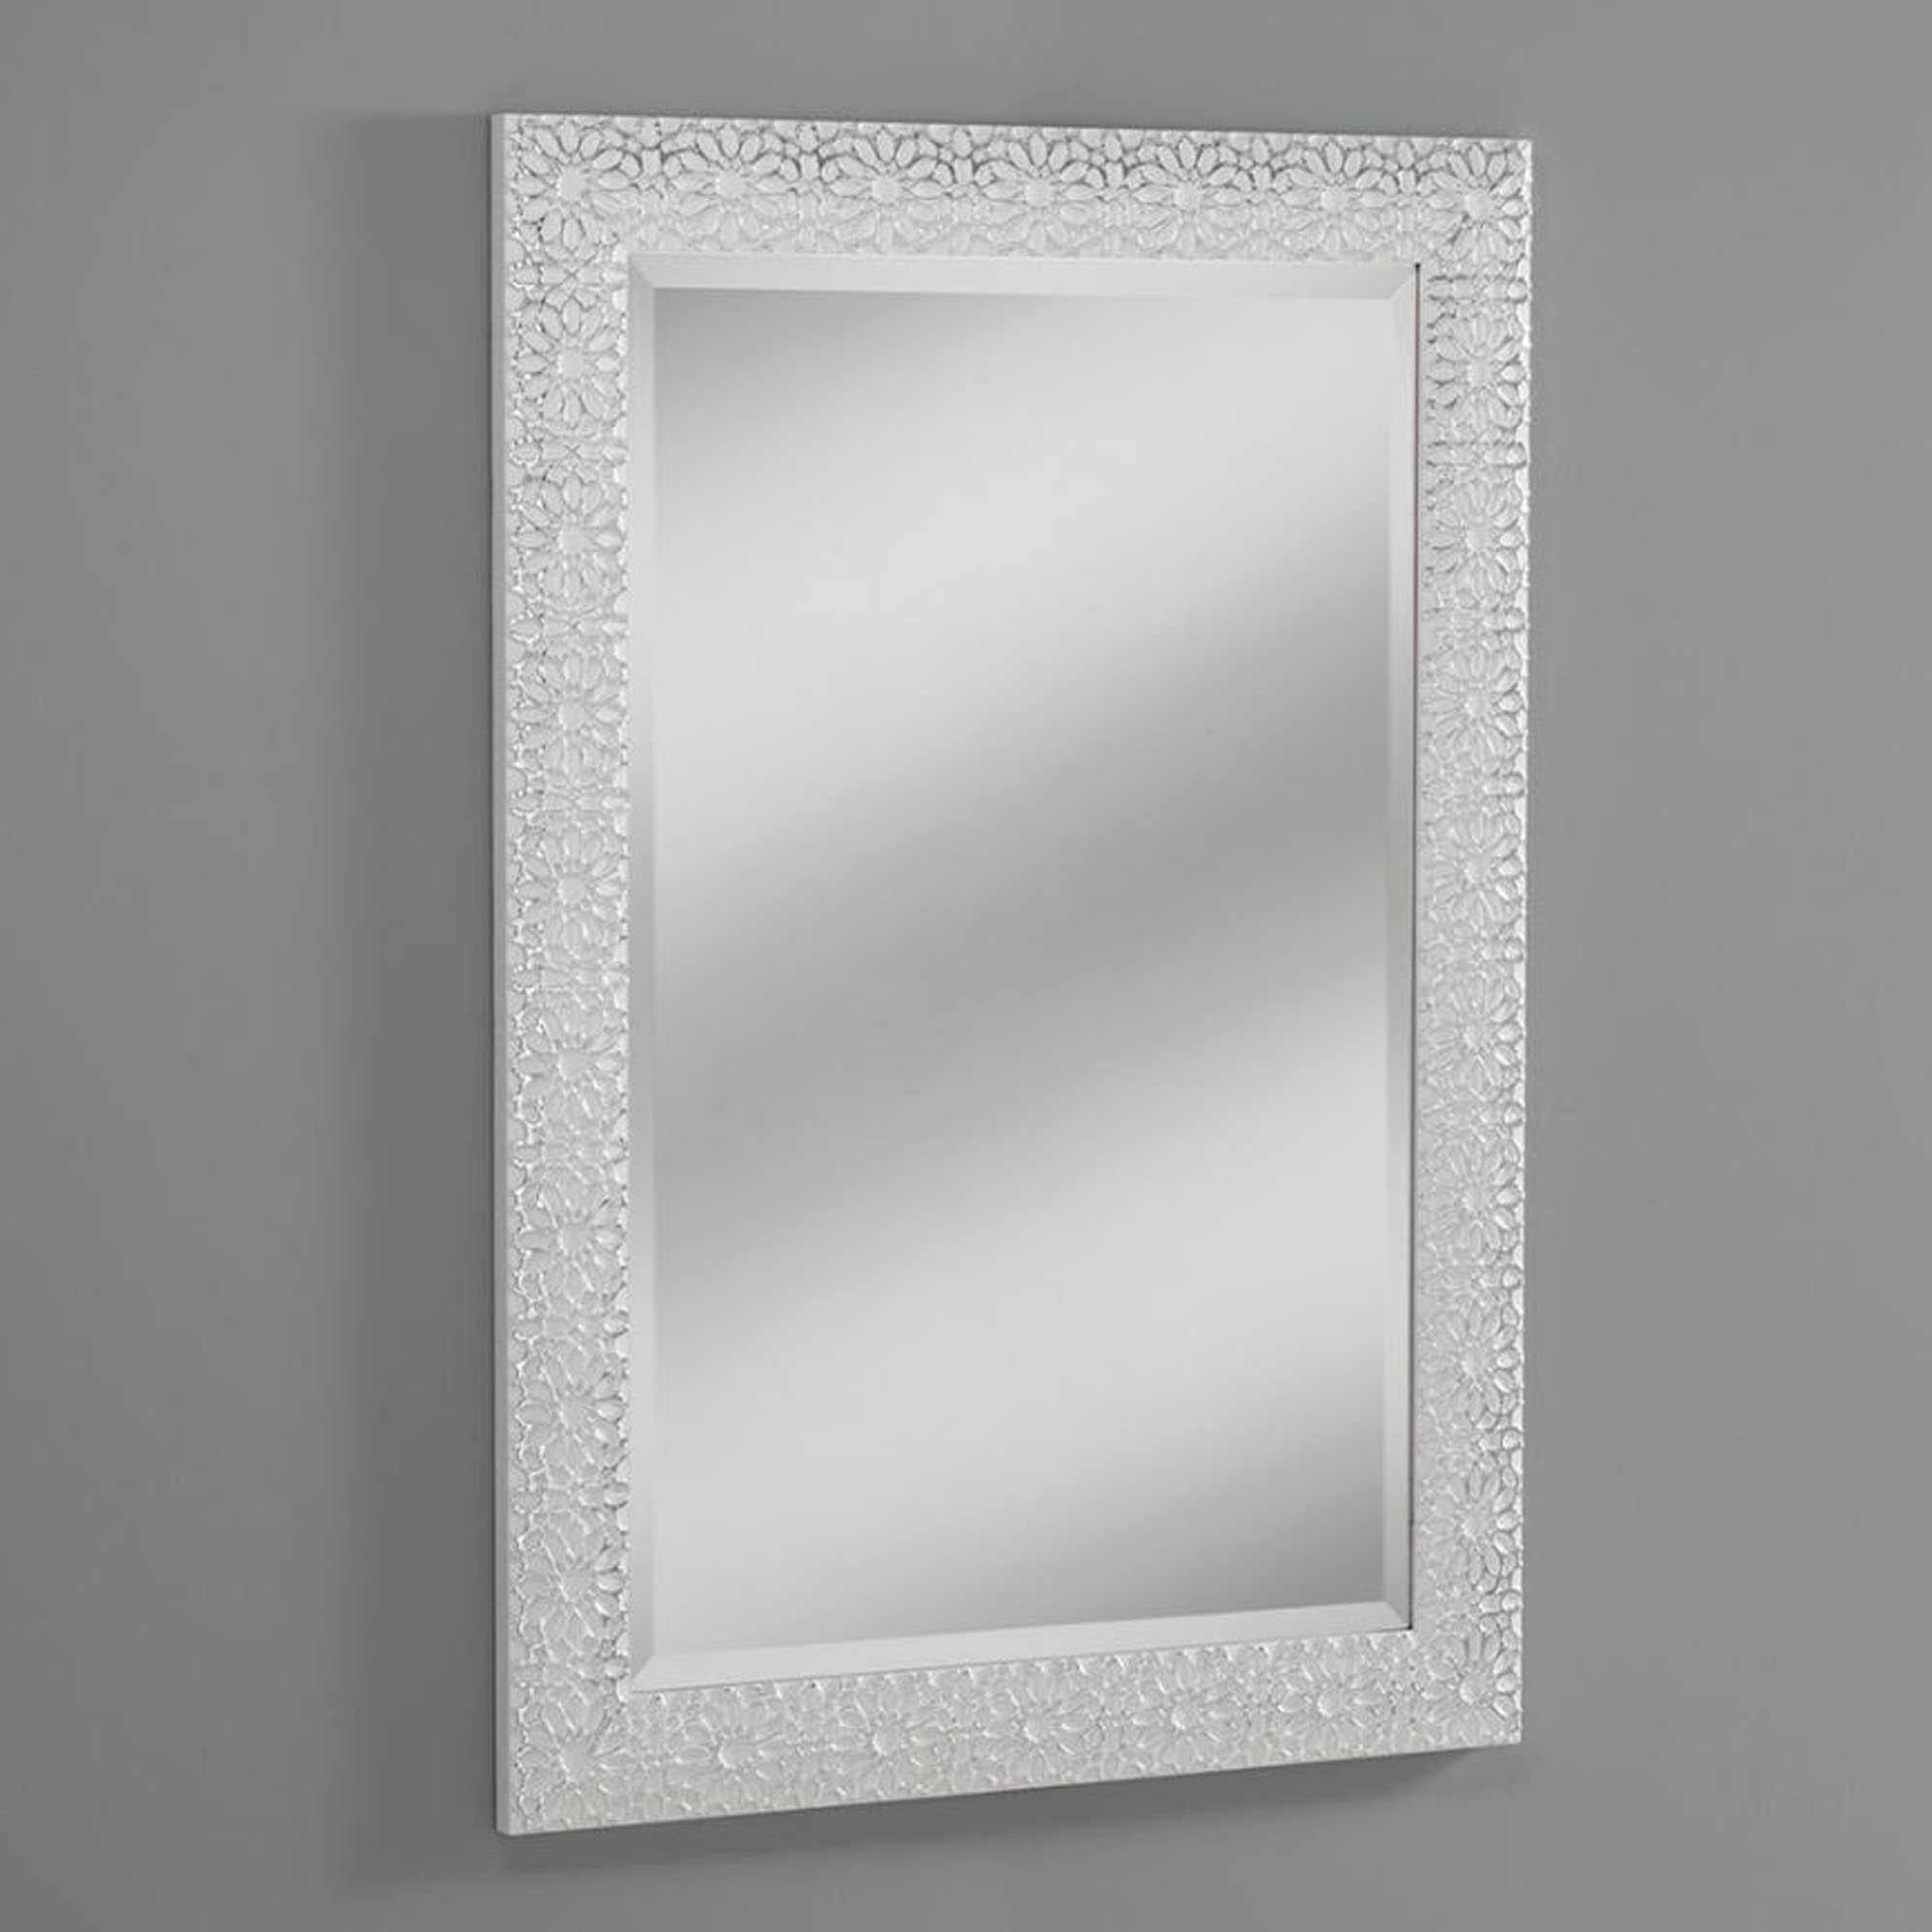 Favorite Round White Wall Mirrors Pertaining To Ausergewohnlich White Wall Mirrors Decor Extra Art Full (View 16 of 20)